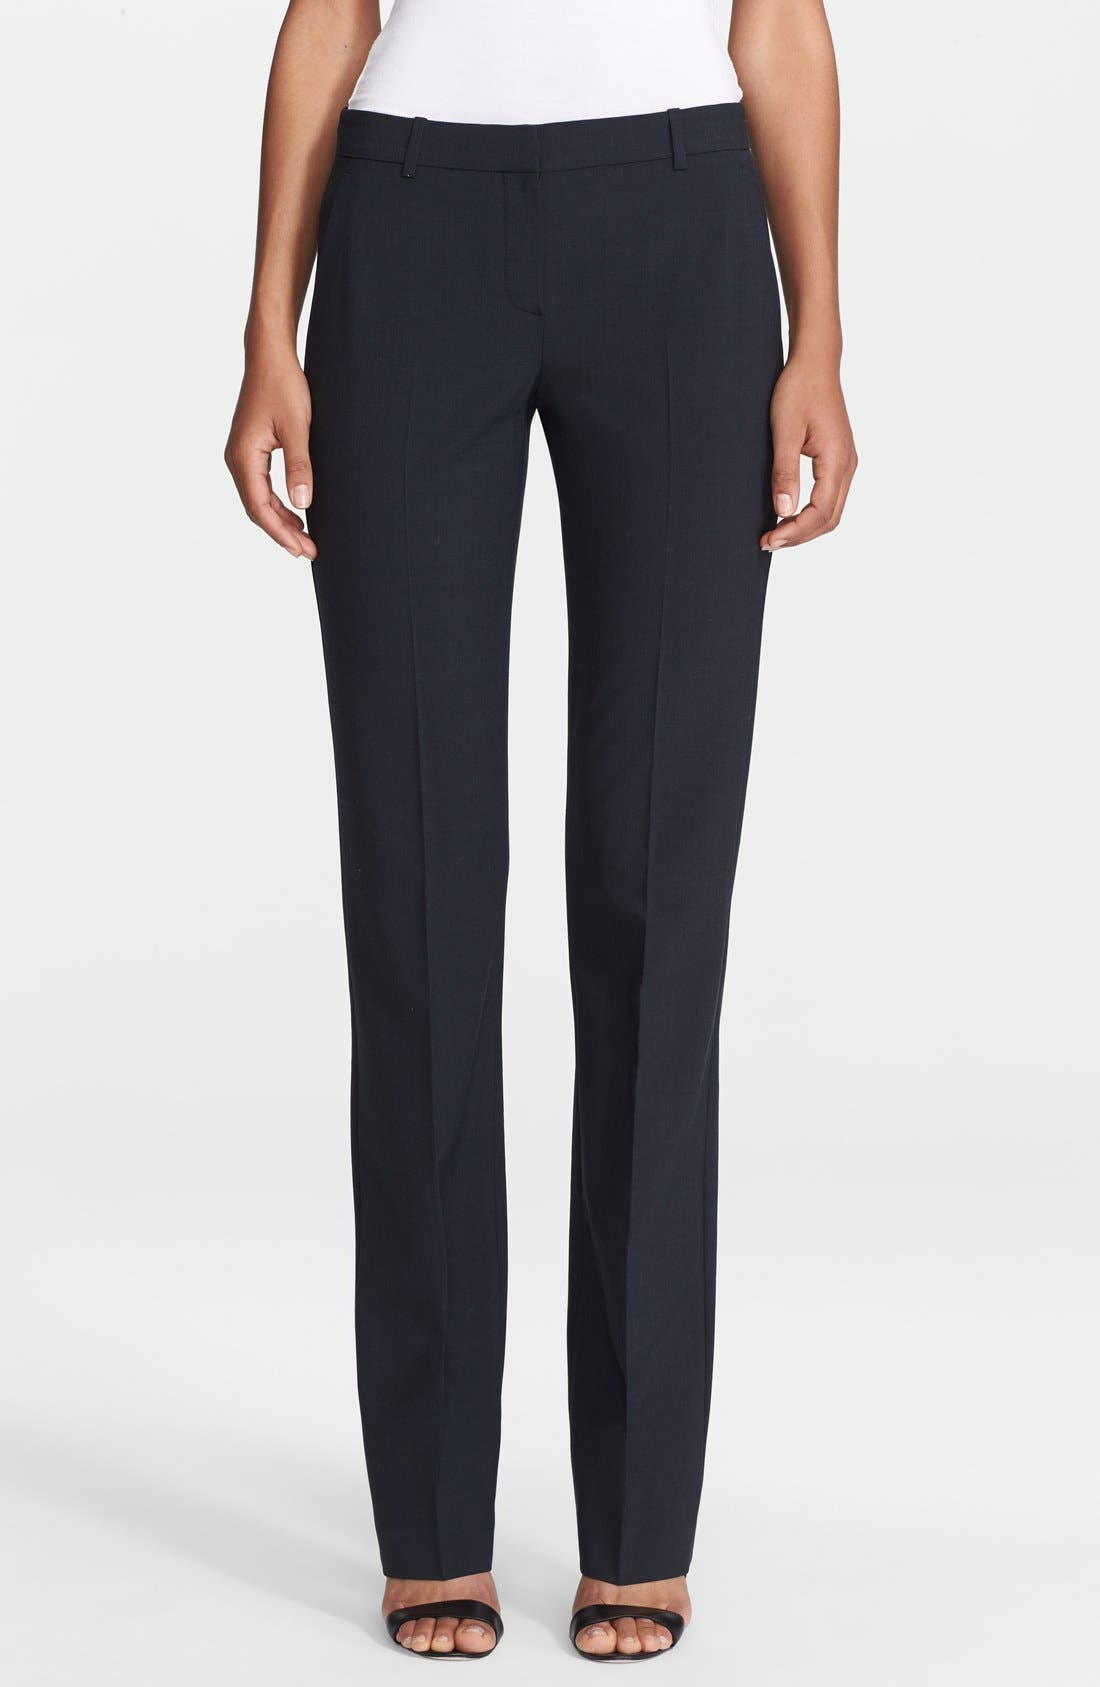 Alternate Image 1 Selected - Theory 'Emery 2' Stretch Pants